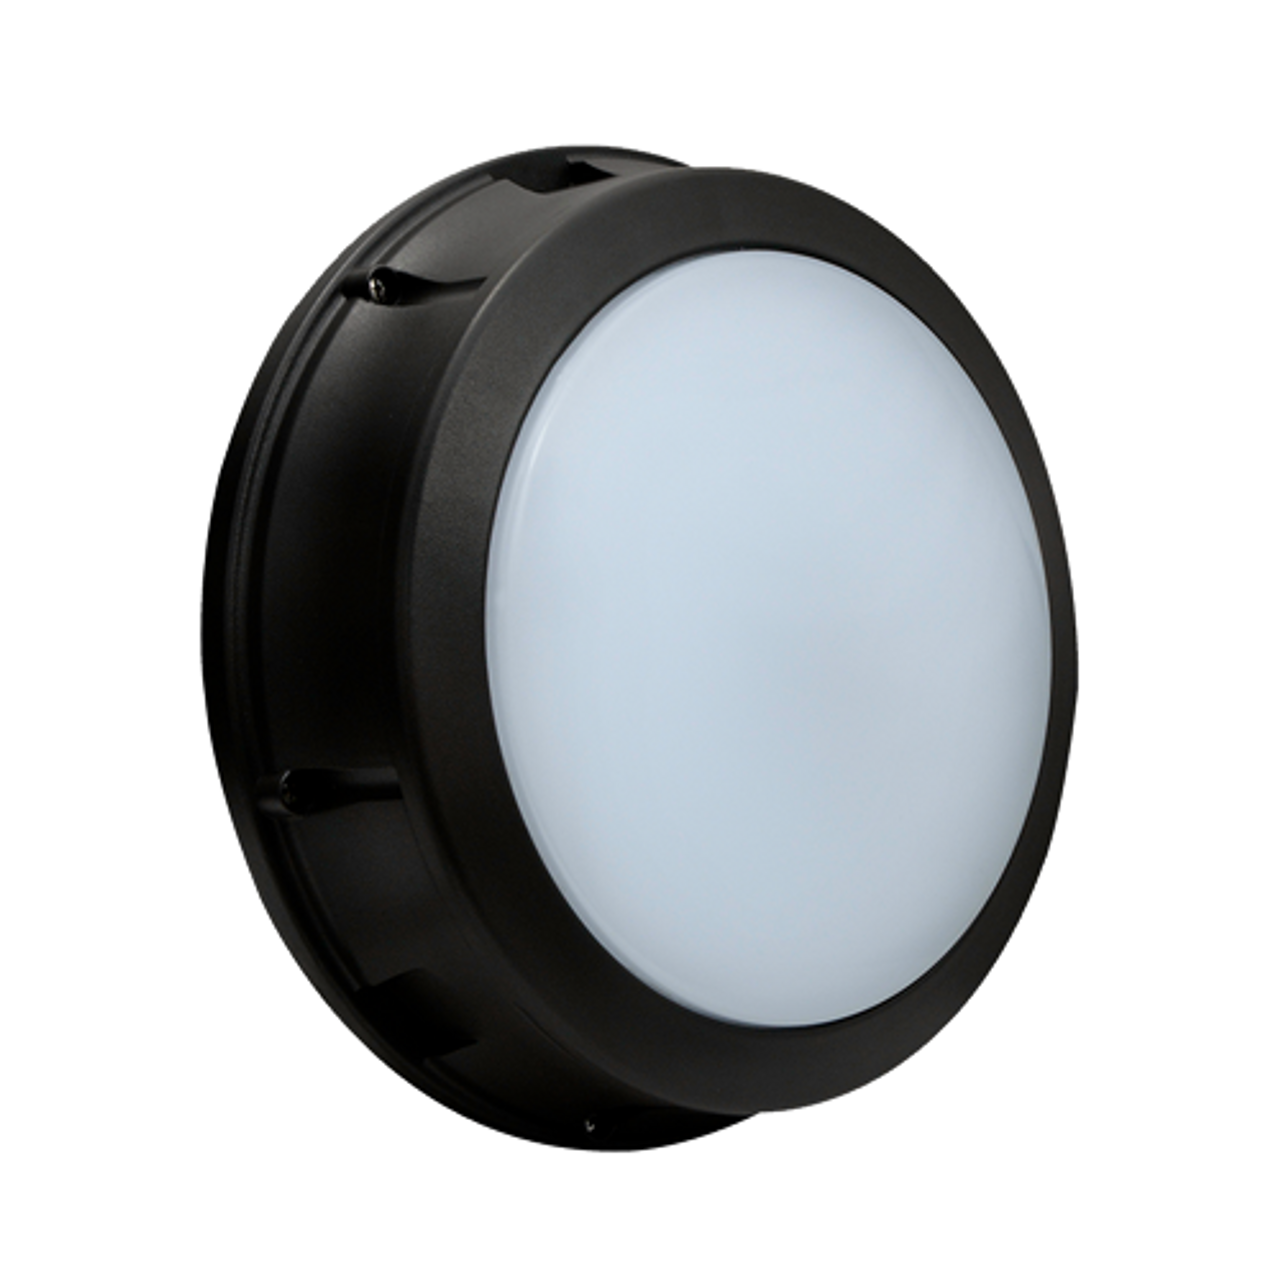 17W LED Bulkhead Open Wall Light with Emergency Battery Back-up